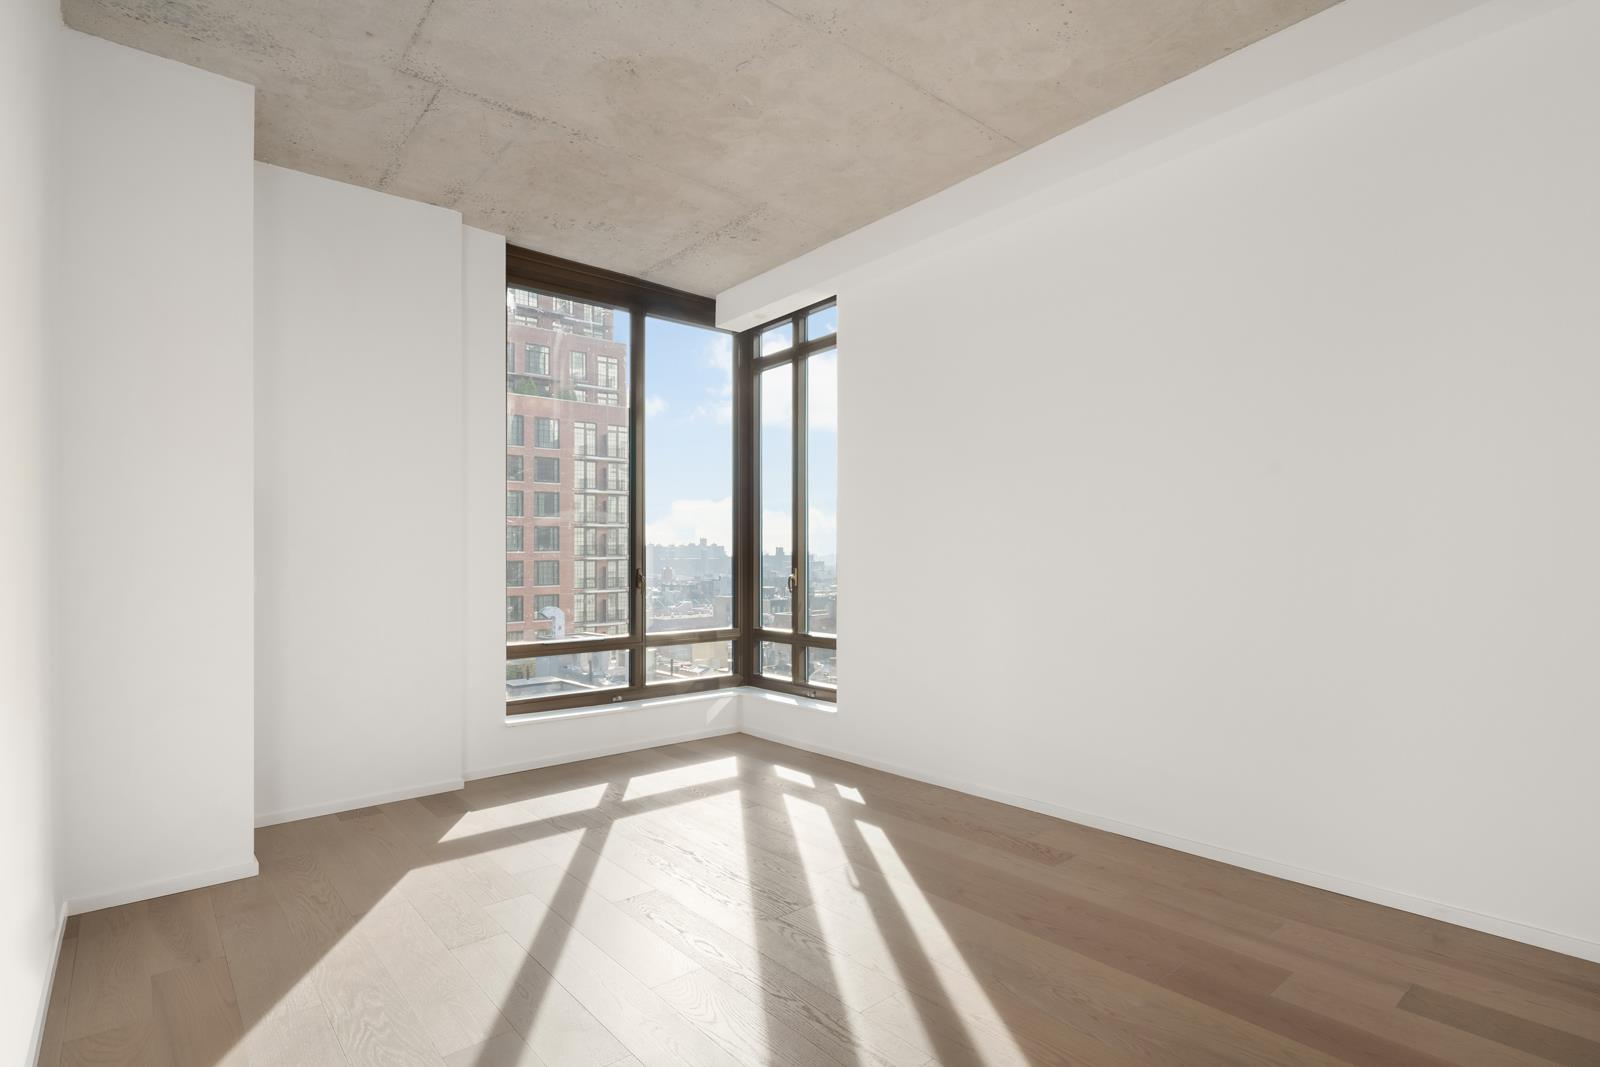 Apartment for sale at 196 Orchard Street, Apt 9-A